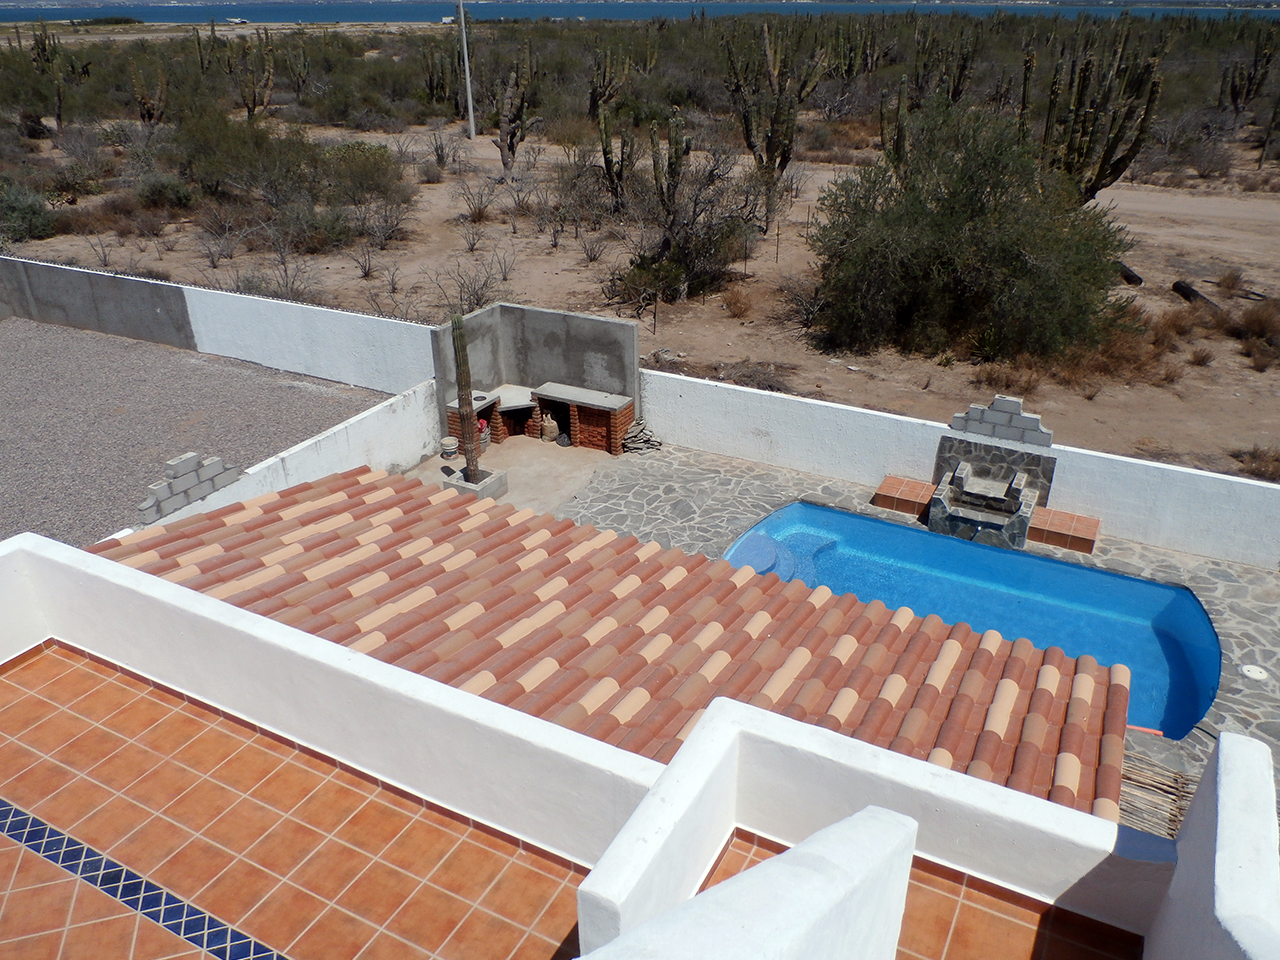 View of Pool & Bar from Deck at Divers Inn MX Bed & Breakfast in La Paz, Mexico